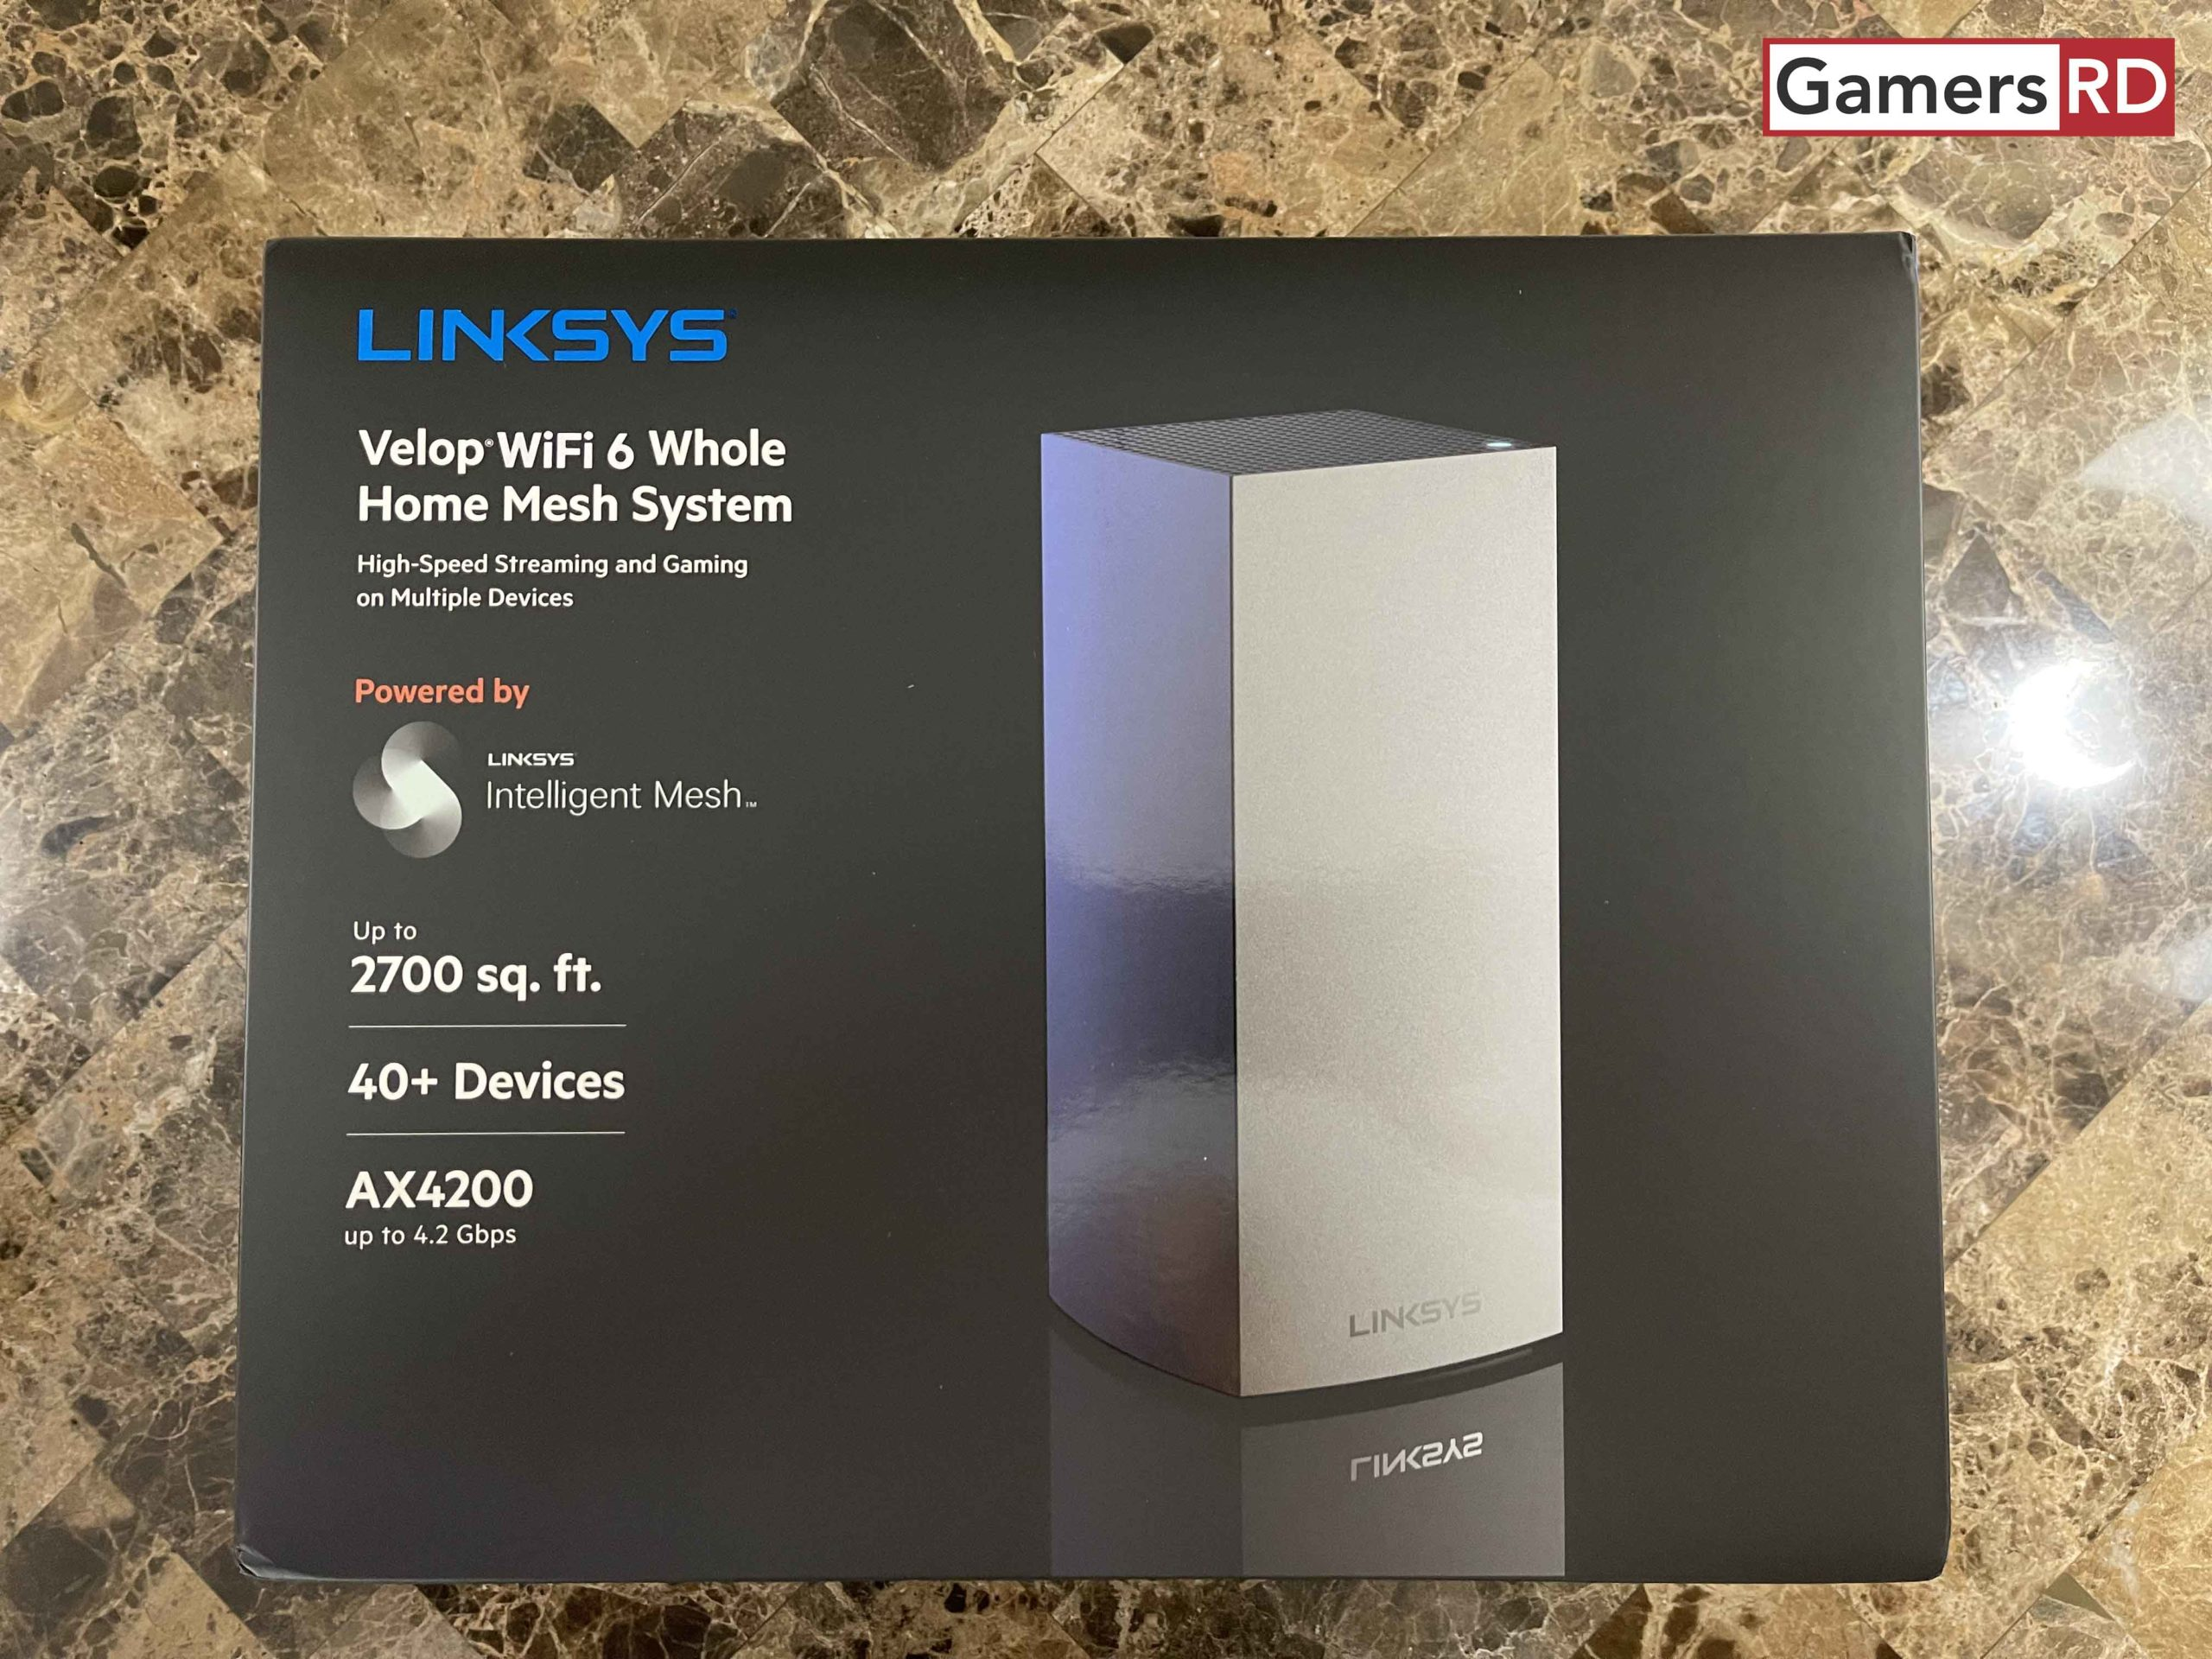 Linksys Velop AX4200 WiFi 6 Mesh System Review, 1 GamersRD